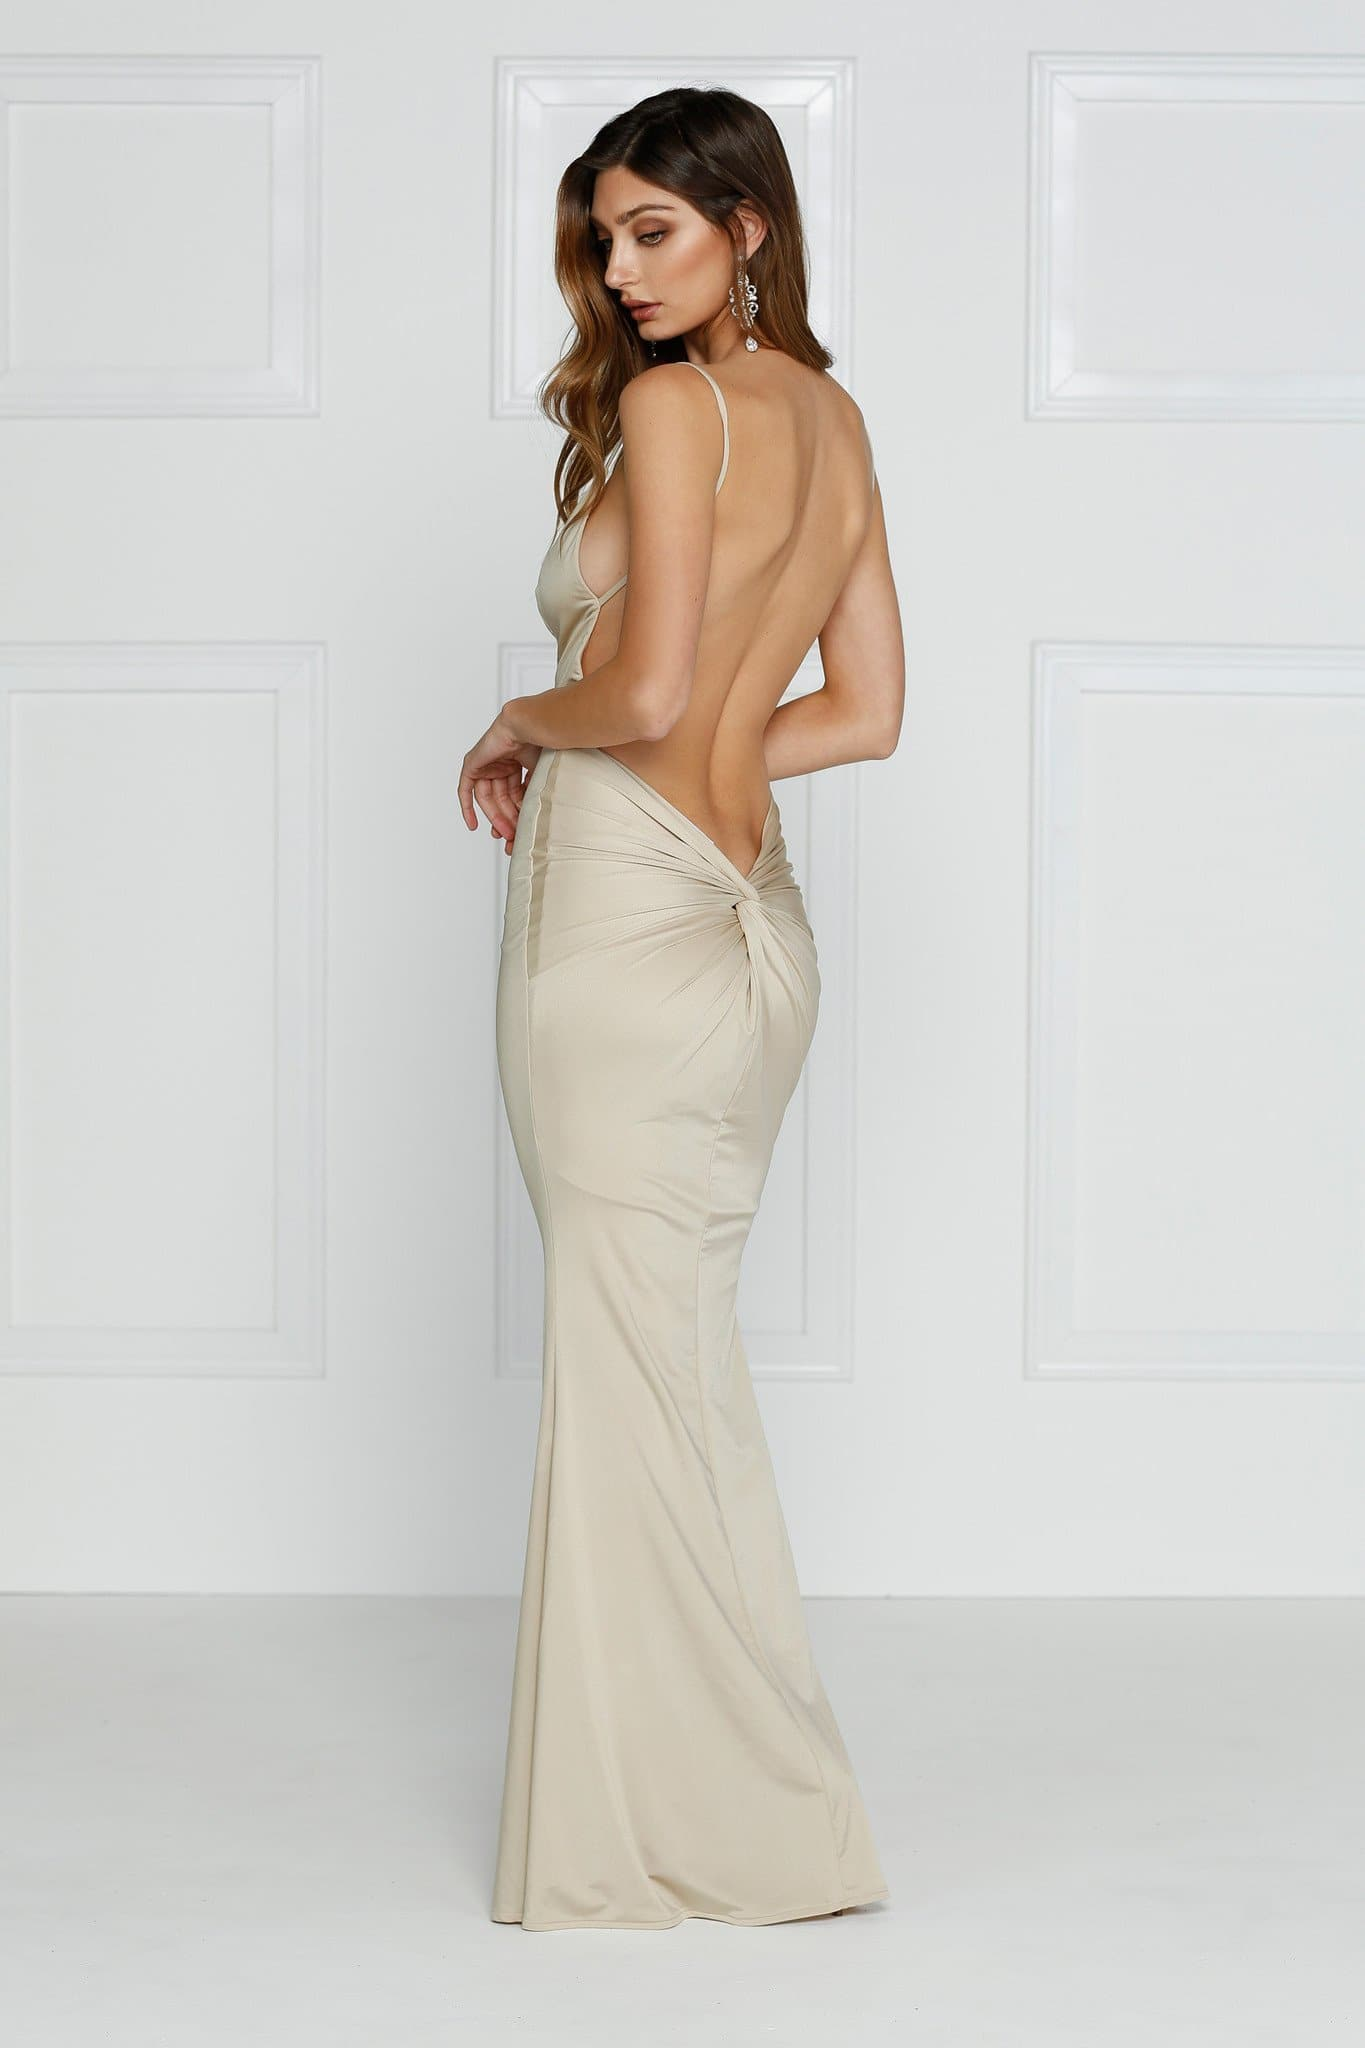 Penelope Luxe - Champagne Jersey Gown with Plunge Neckline & Low Back